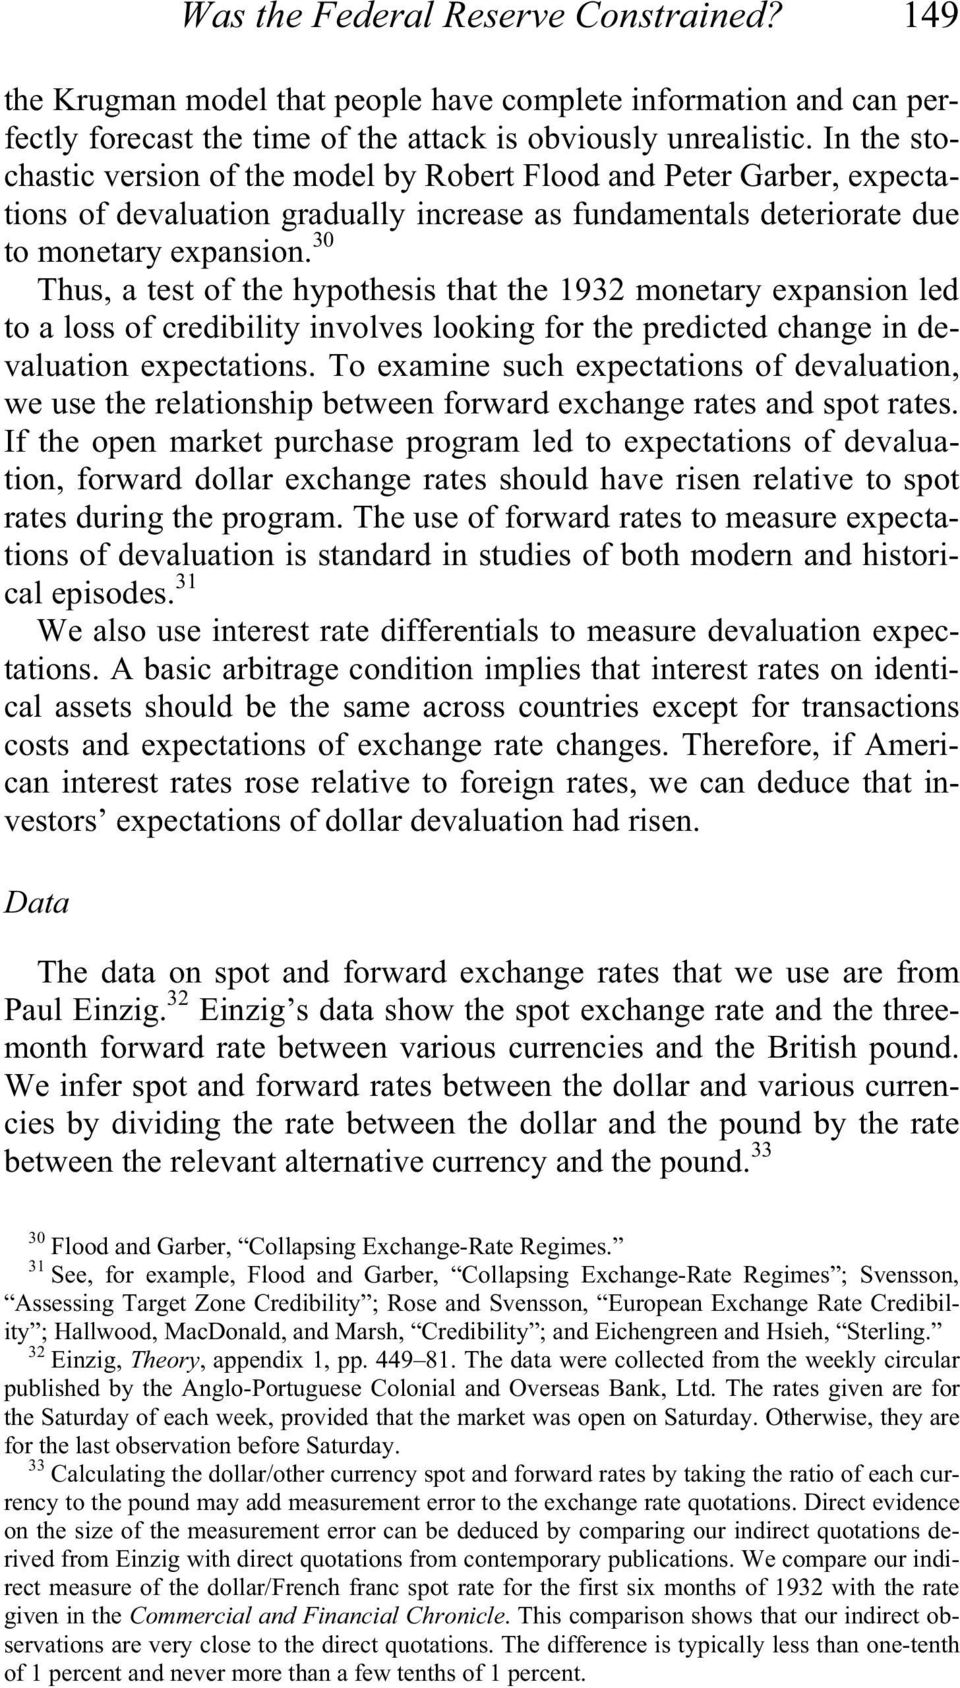 30 Thus, a test of the hypothesis that the 1932 monetary expansion led to a loss of credibility involves looking for the predicted change in devaluation expectations.